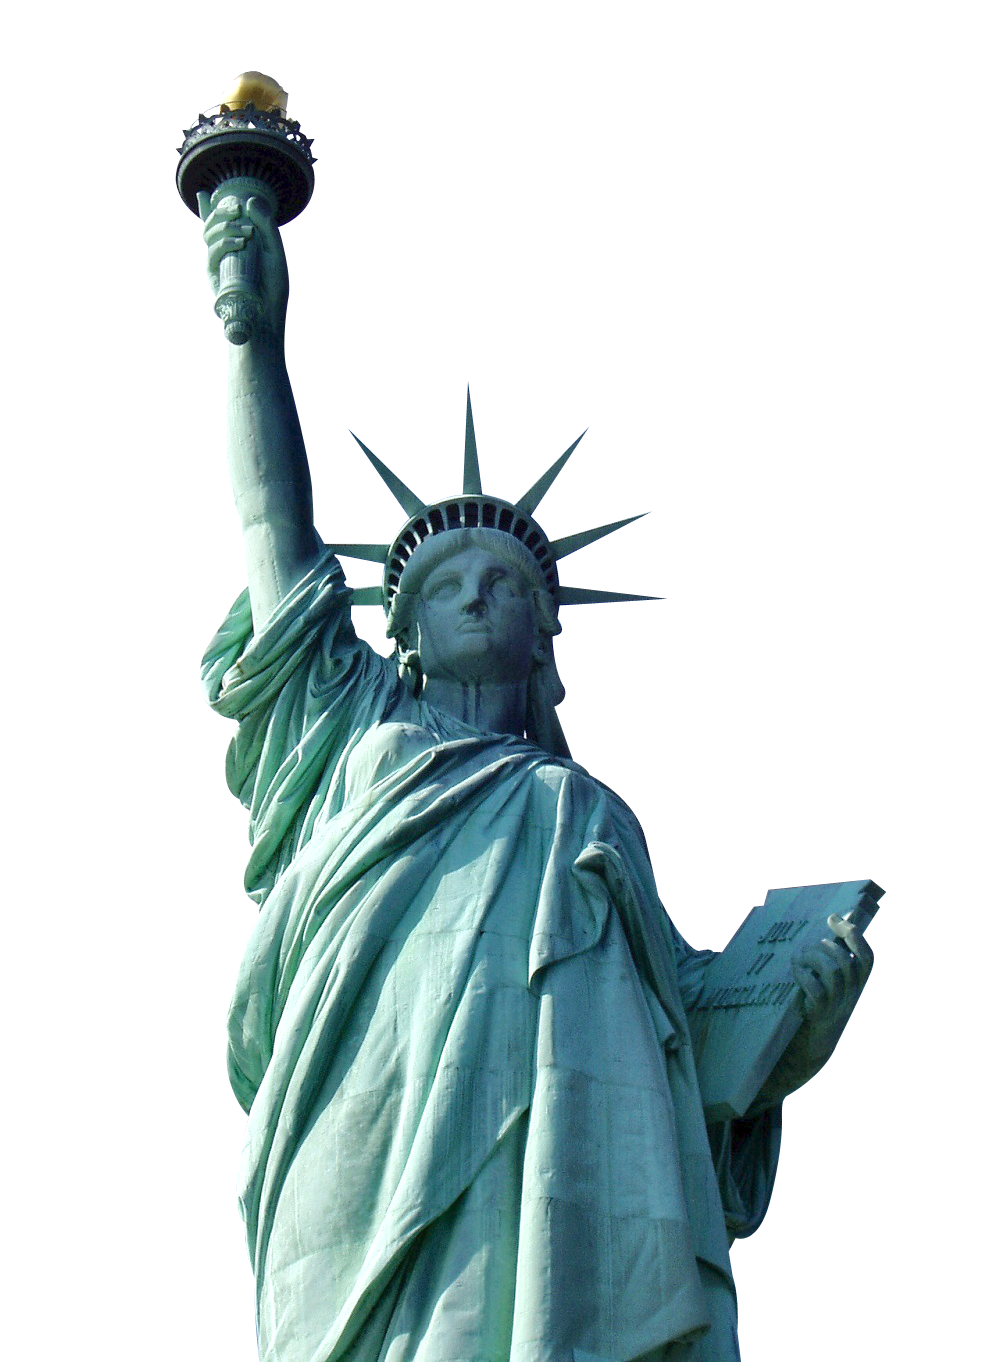 Statue of liberty crown clipart graphic royalty free Download Statue Of Liberty HQ PNG Image | FreePNGImg graphic royalty free